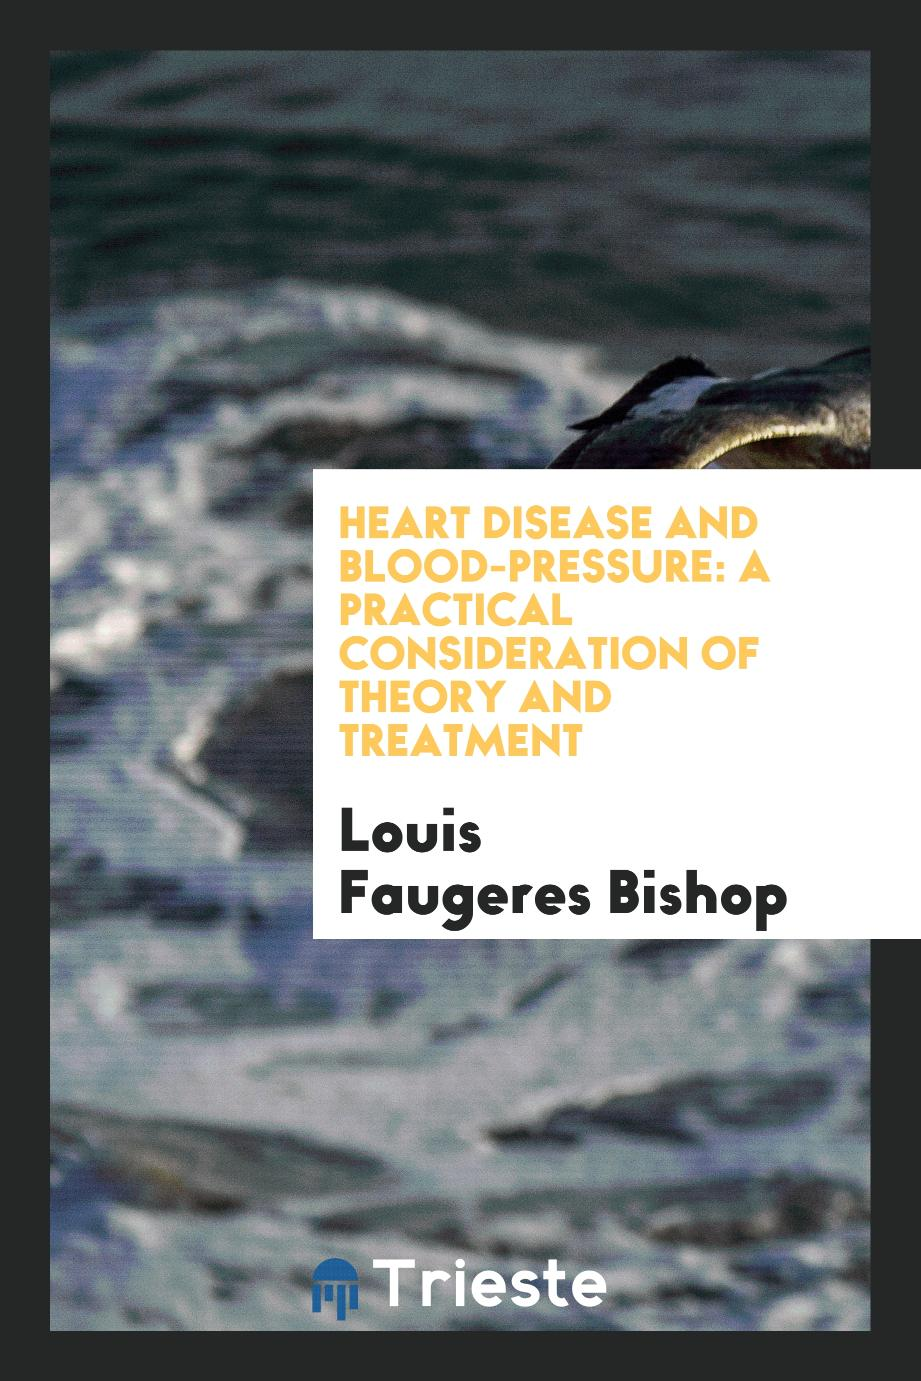 Heart Disease and Blood-Pressure: A Practical Consideration of Theory and Treatment